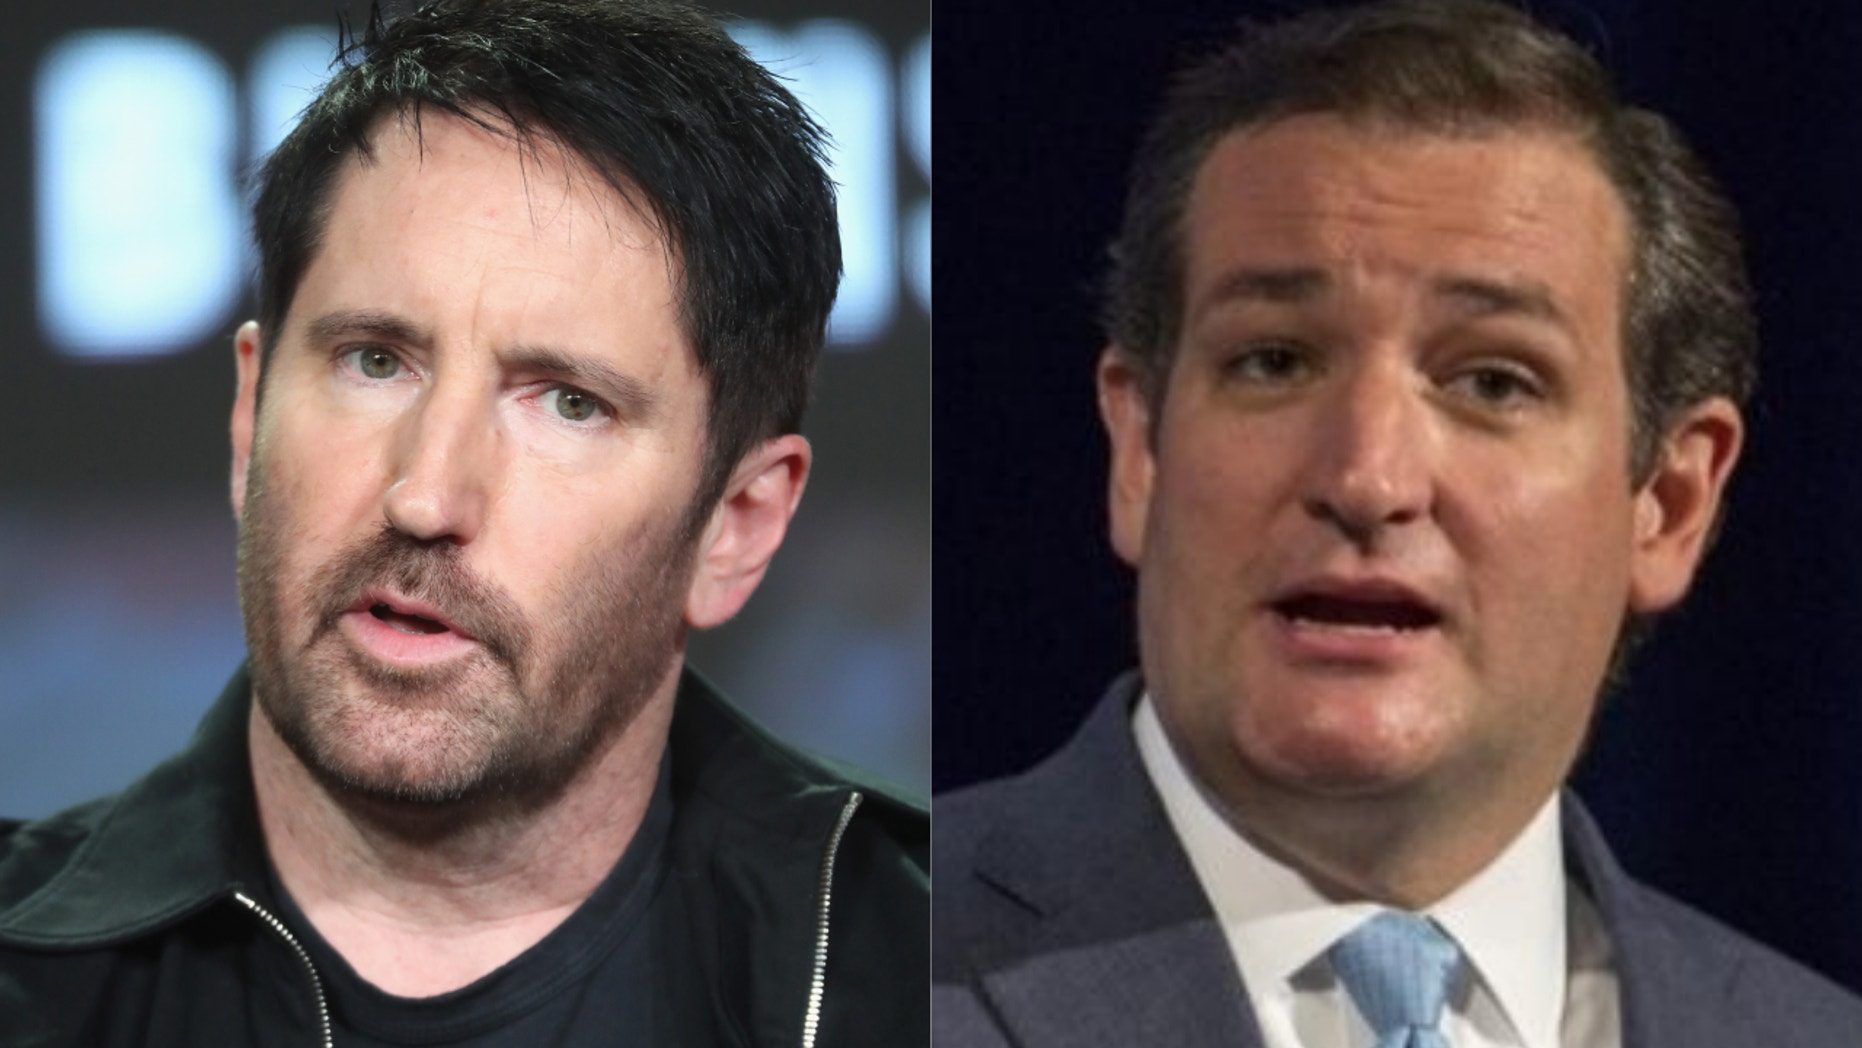 Nine Inch Nails frontman Trent Reznor, left, and Ted Cruz, right.